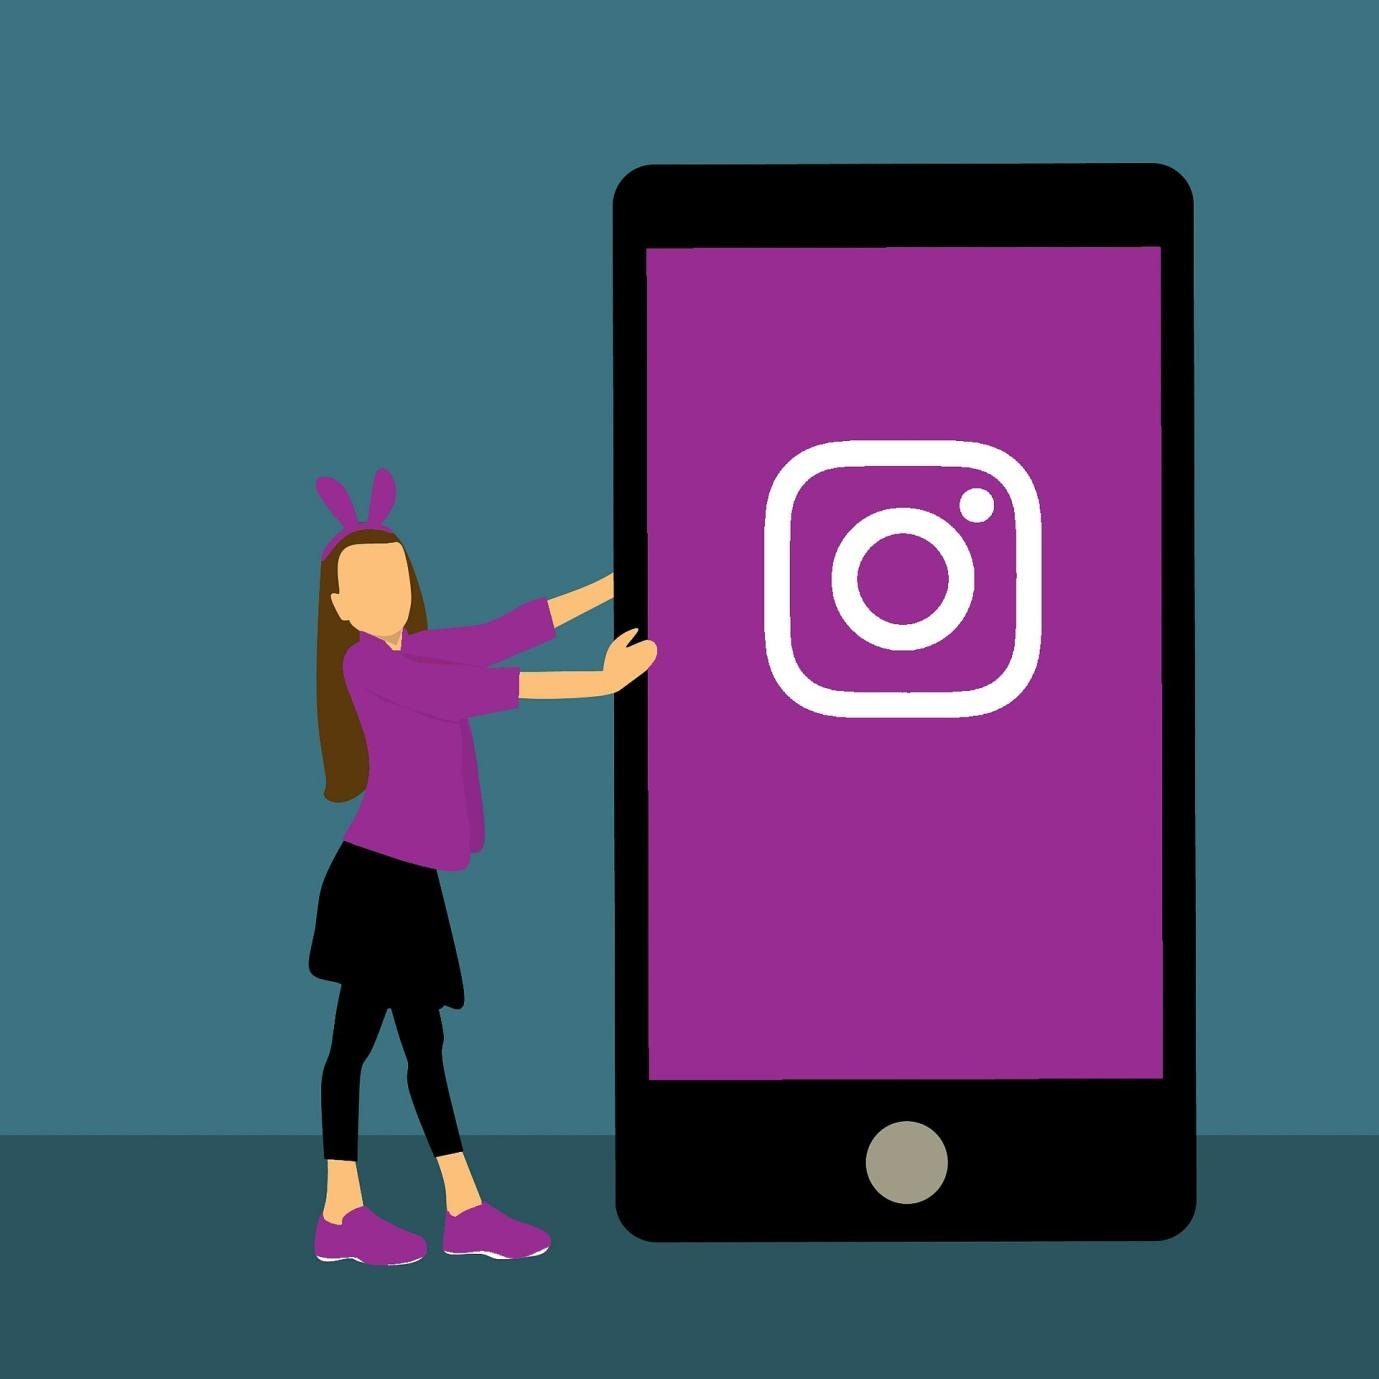 How Do Brands Use Celebrities to Attract More Customers Through Instagram?